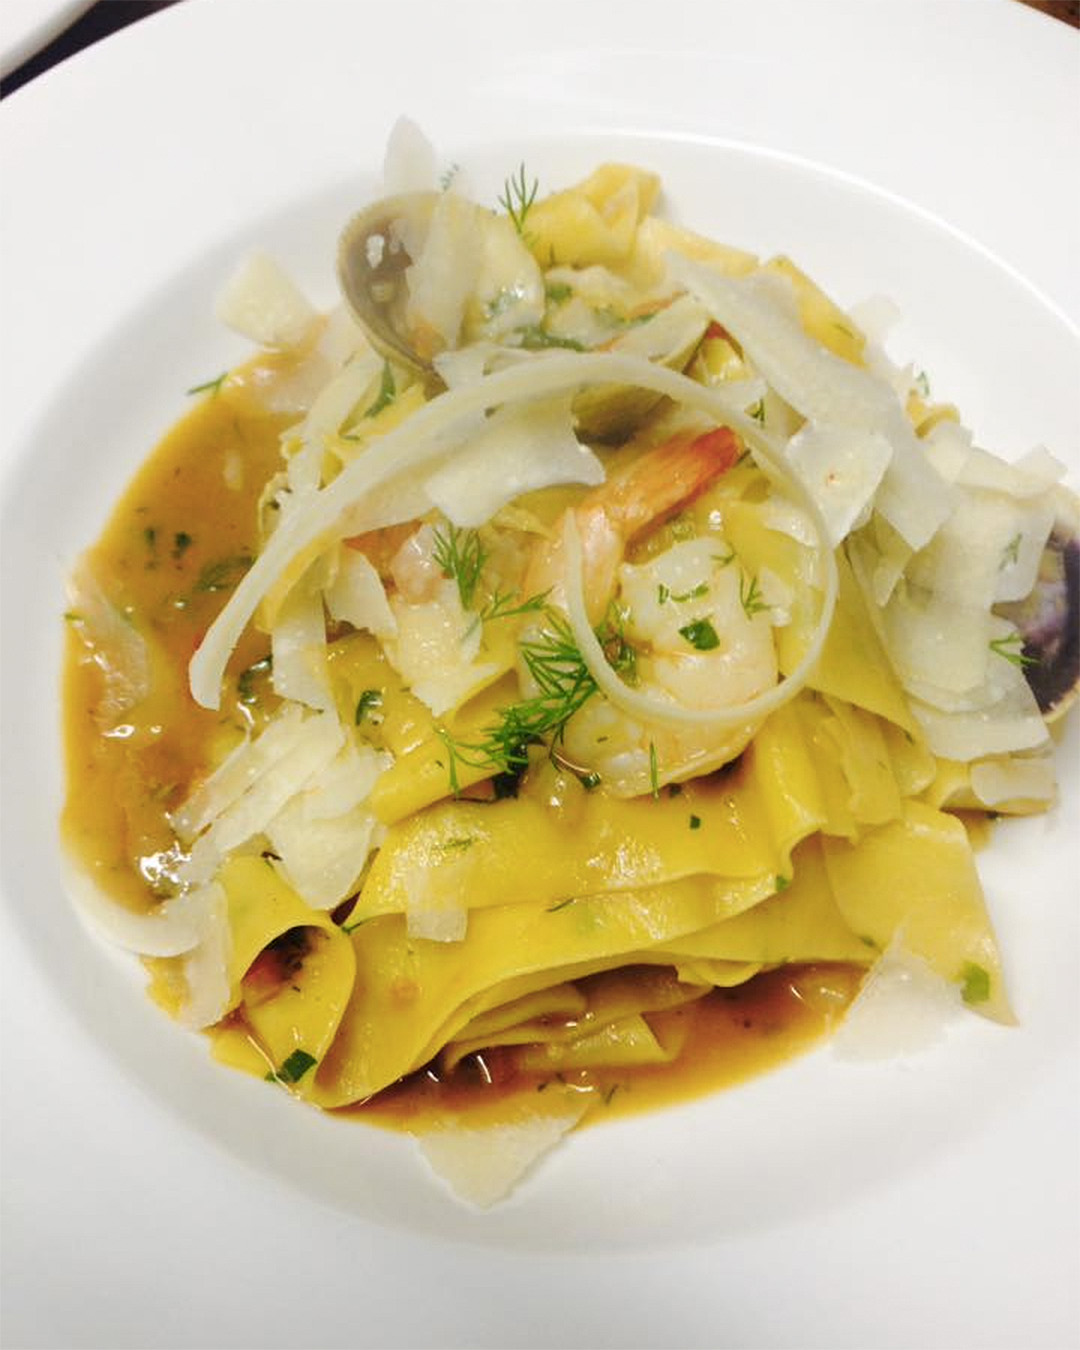 Clam and prawn pappardelle, crayfish sauce and shaved parmesan at DeVille cafe.